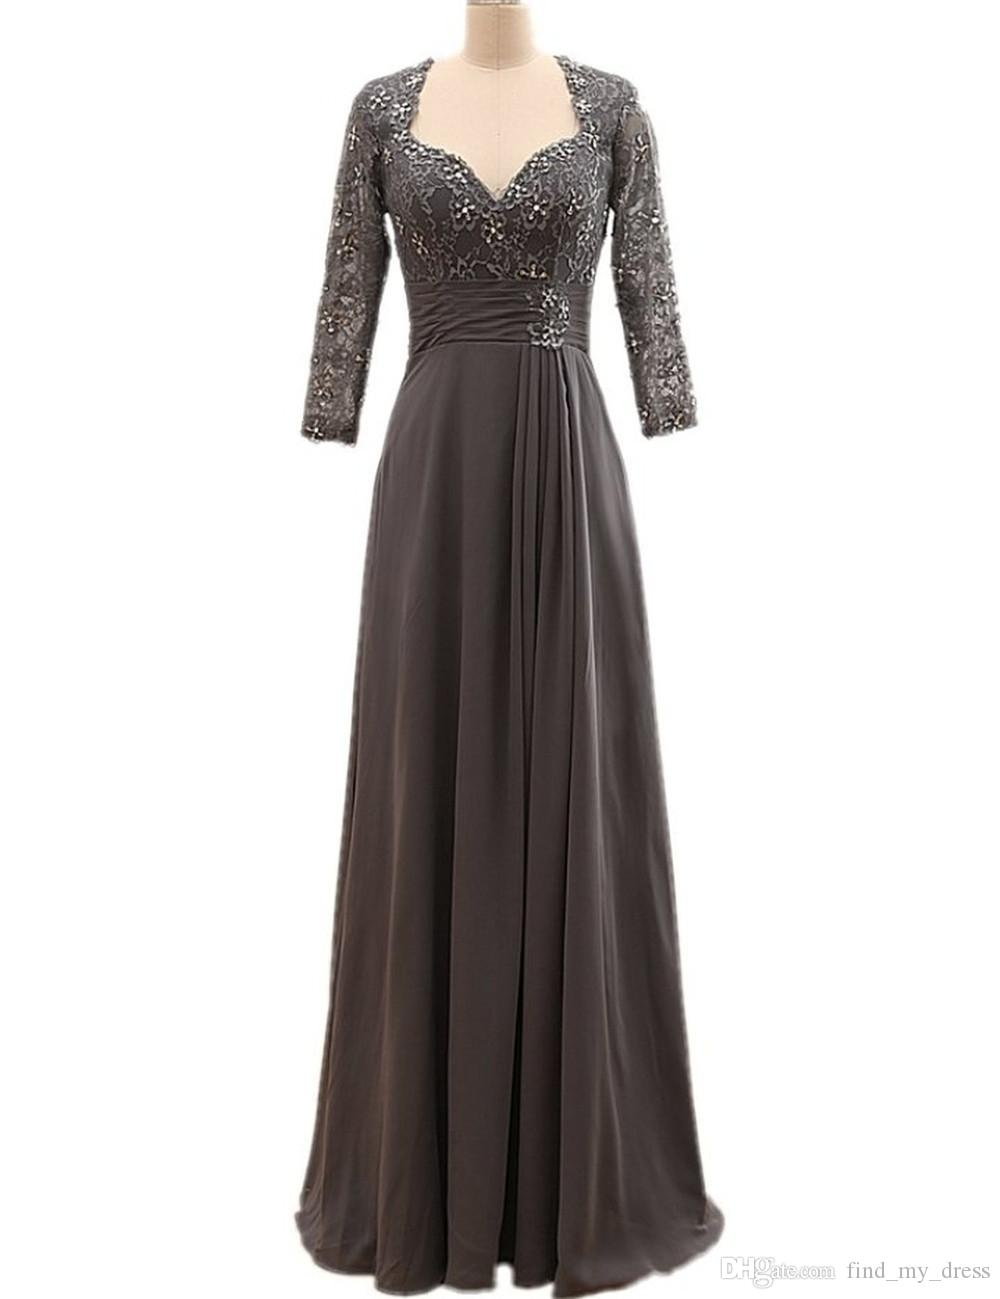 Newest 2017 Gray Mother of the Bride Dress with Jacket Long Sleeve Beaded Lace Chiffon Floor Length Women Formal Gowns Custom